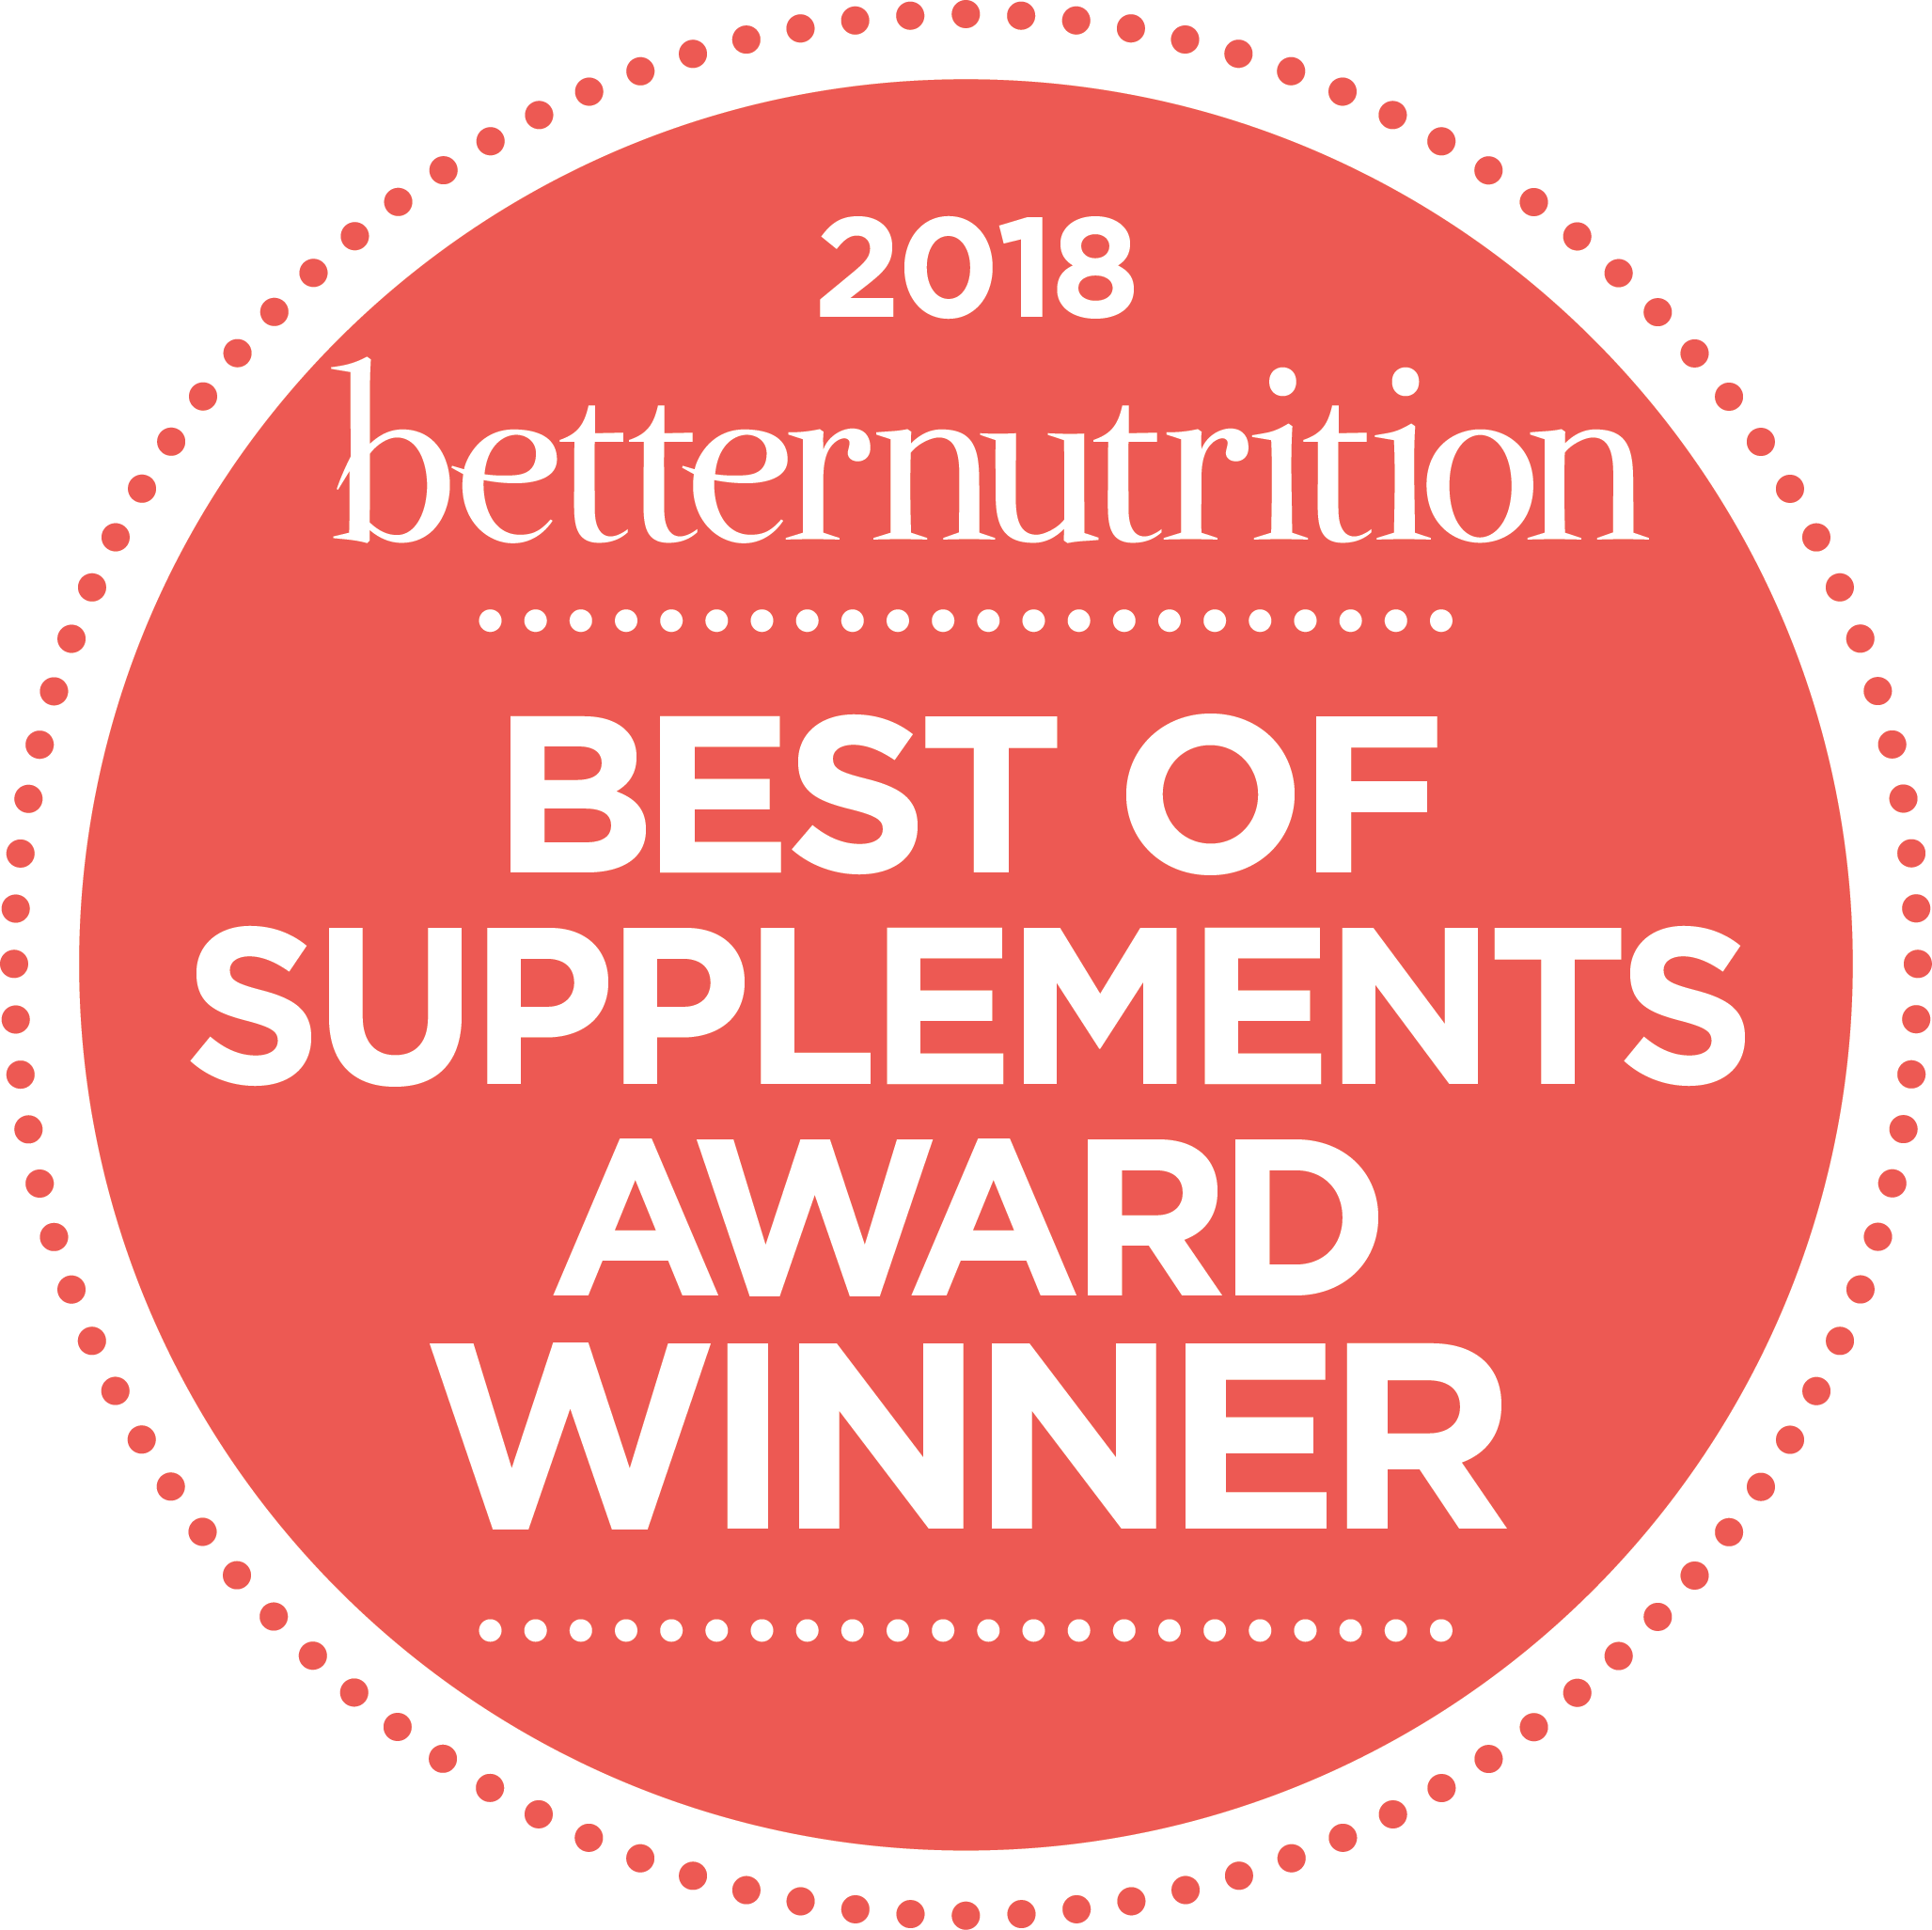 Better Nutrition 2018 Best of Supplements Award Winner